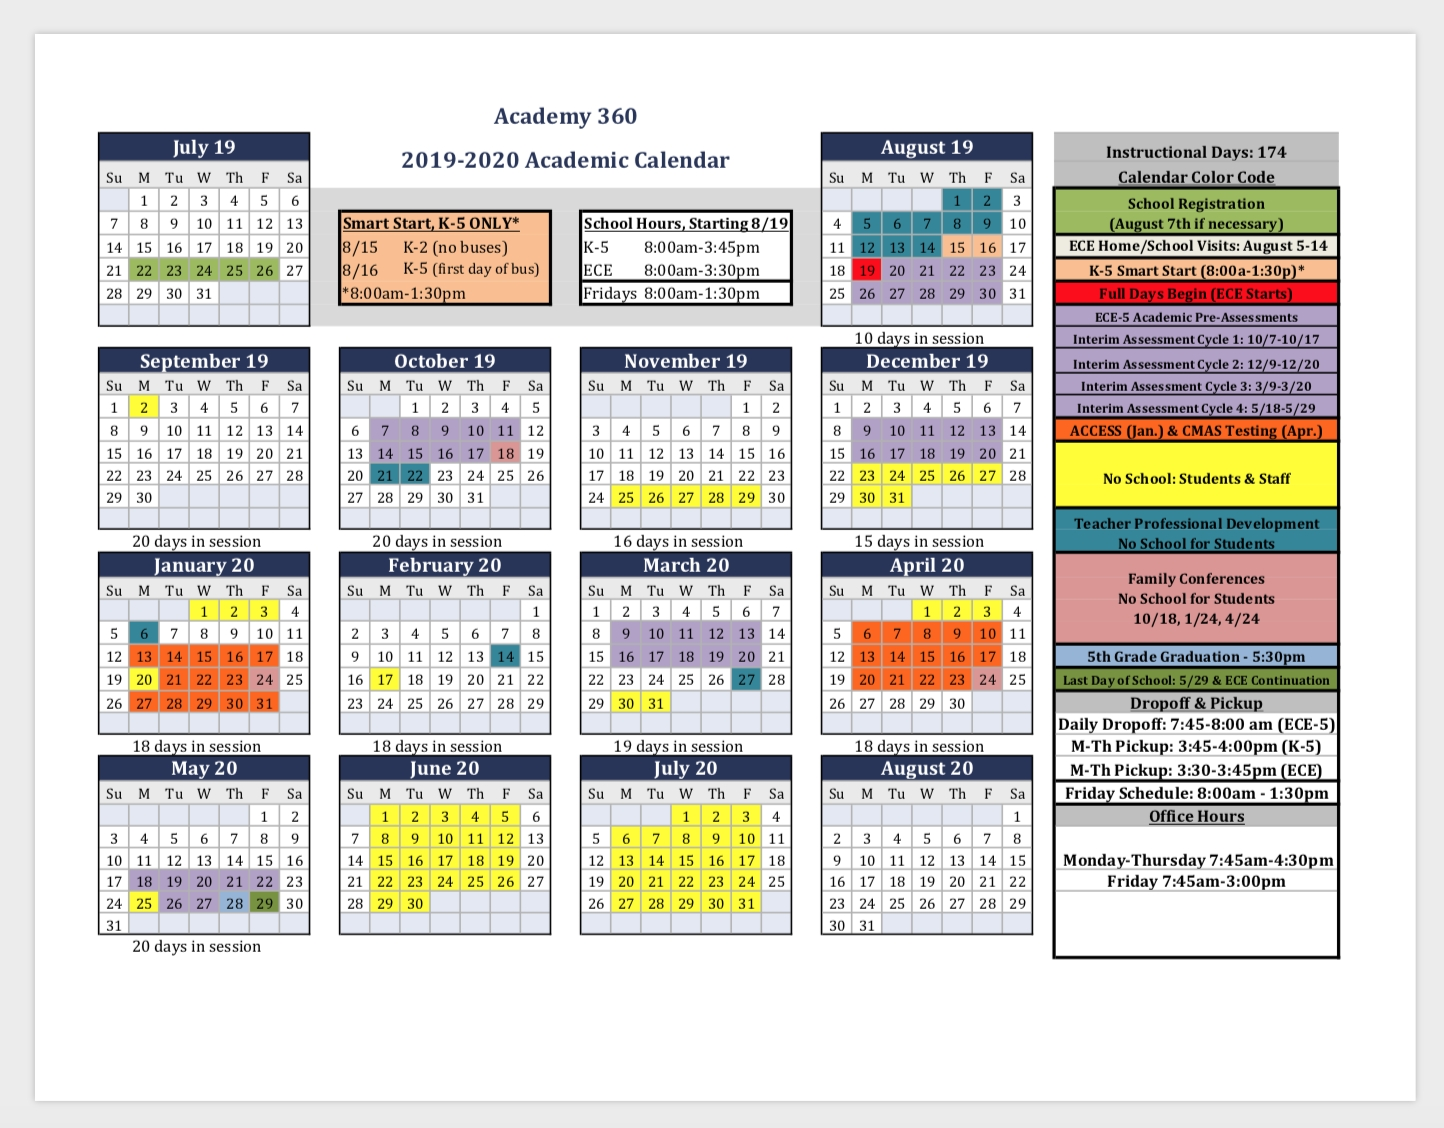 2019-2020 Academic Calendar & Back To School Registration - Academy 360 regarding Special Days Calendar 2020